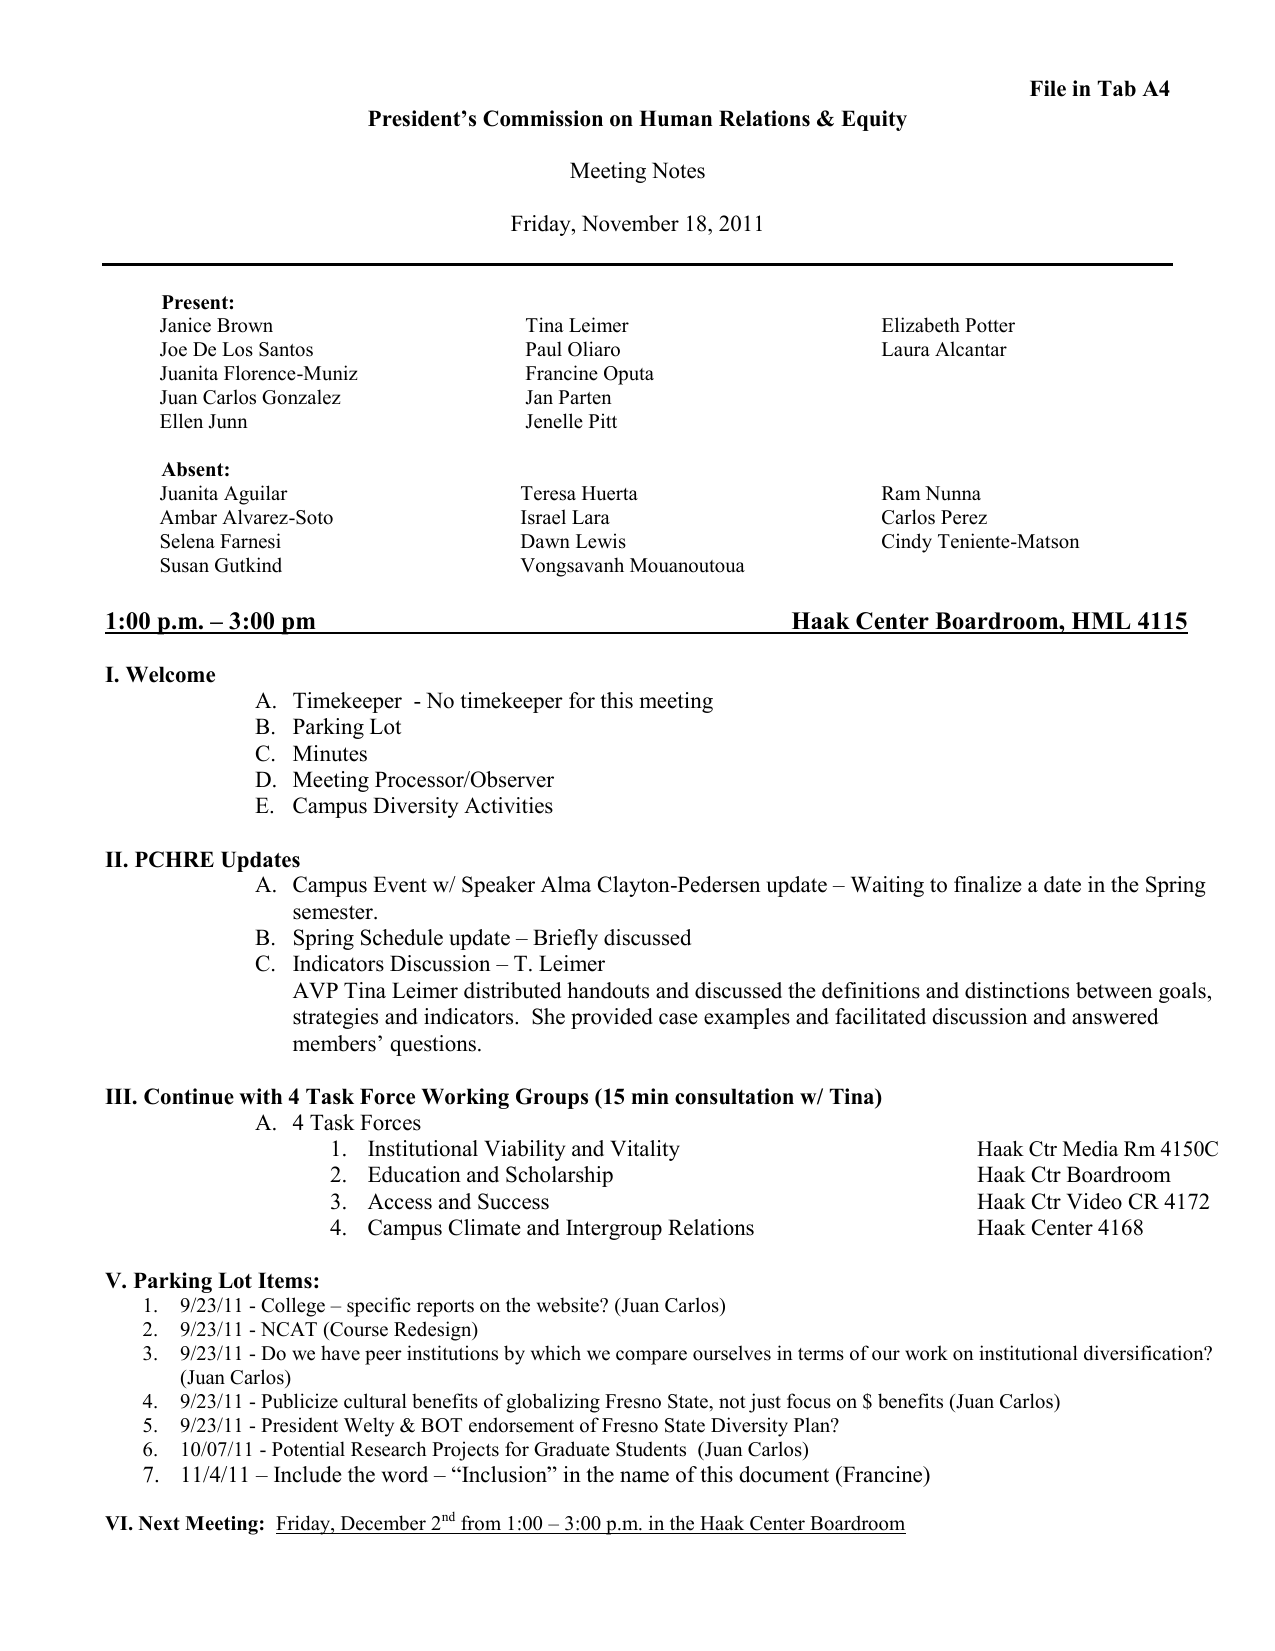 File in Tab A4 President's Commission on Human Relations & Equity